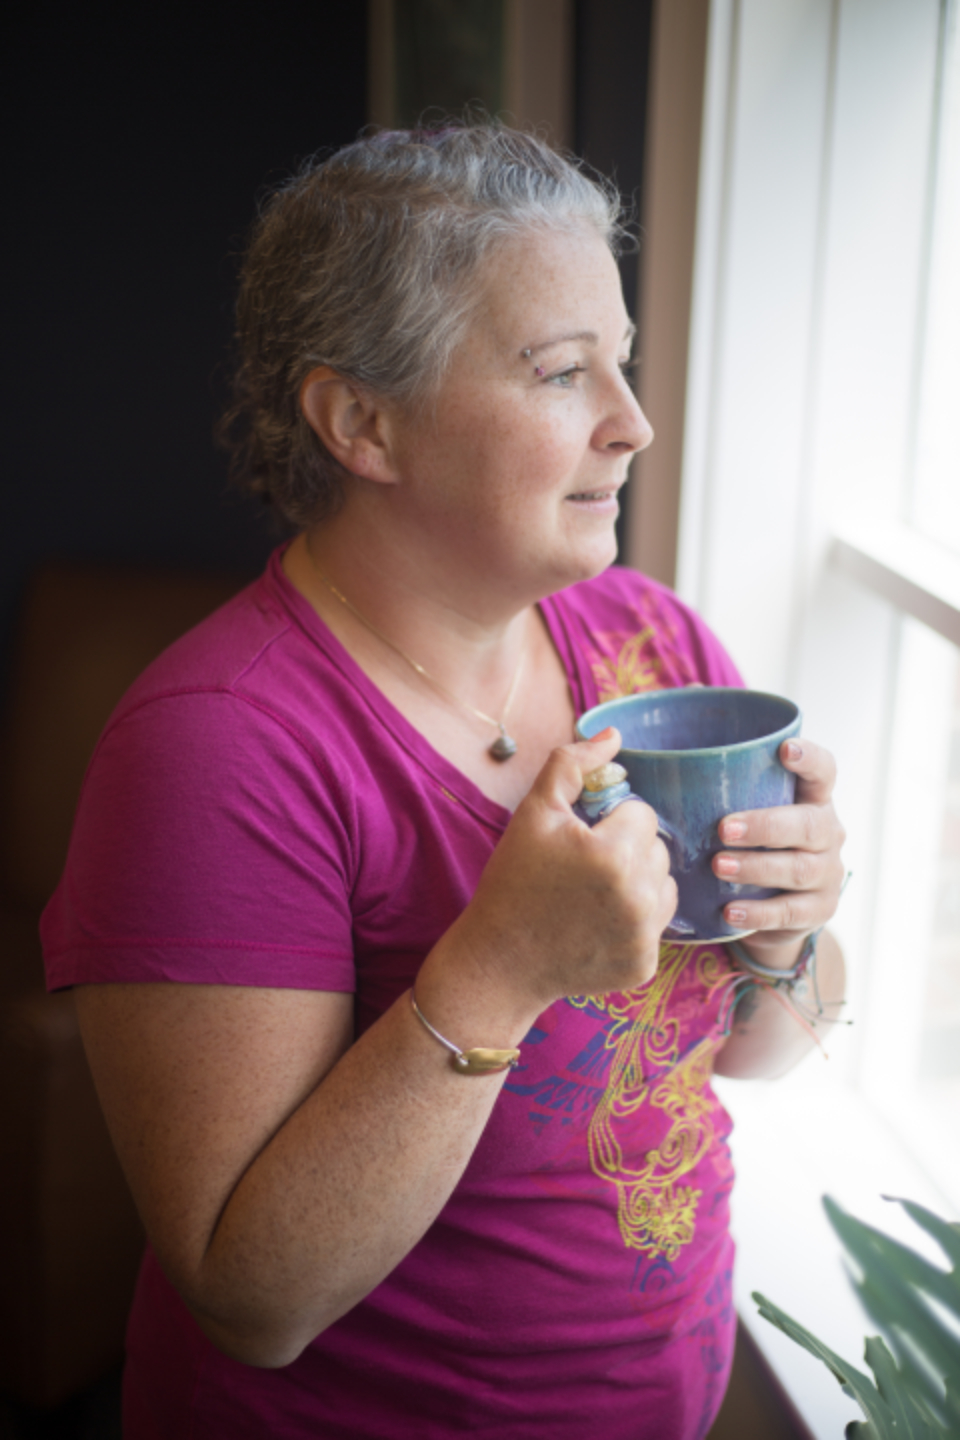 Free stock photo of woman cup